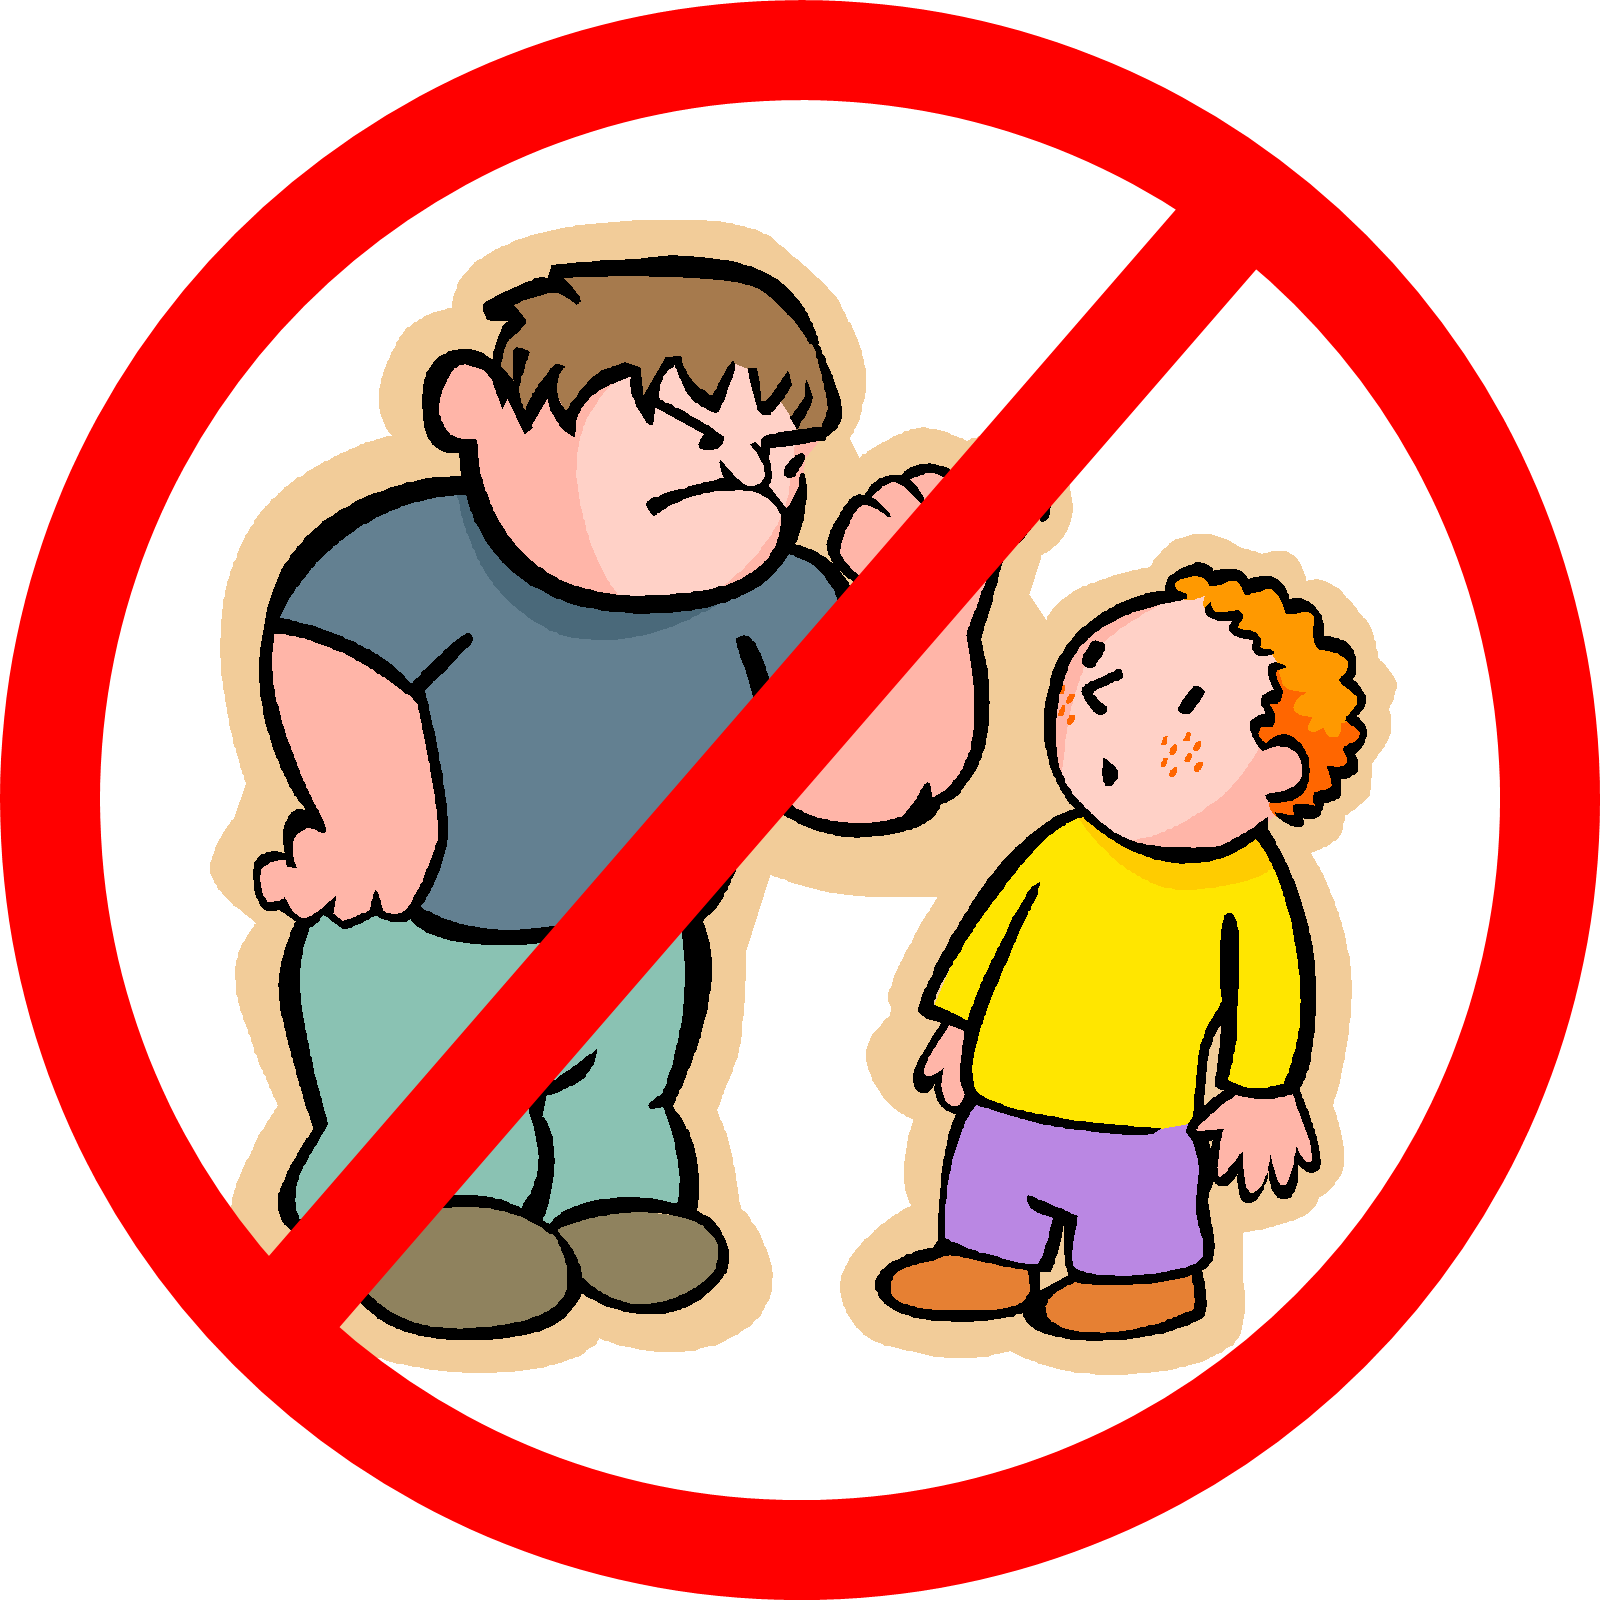 Anti Bullying Clip Art Clipart Best-Anti Bullying Clip Art Clipart Best-2